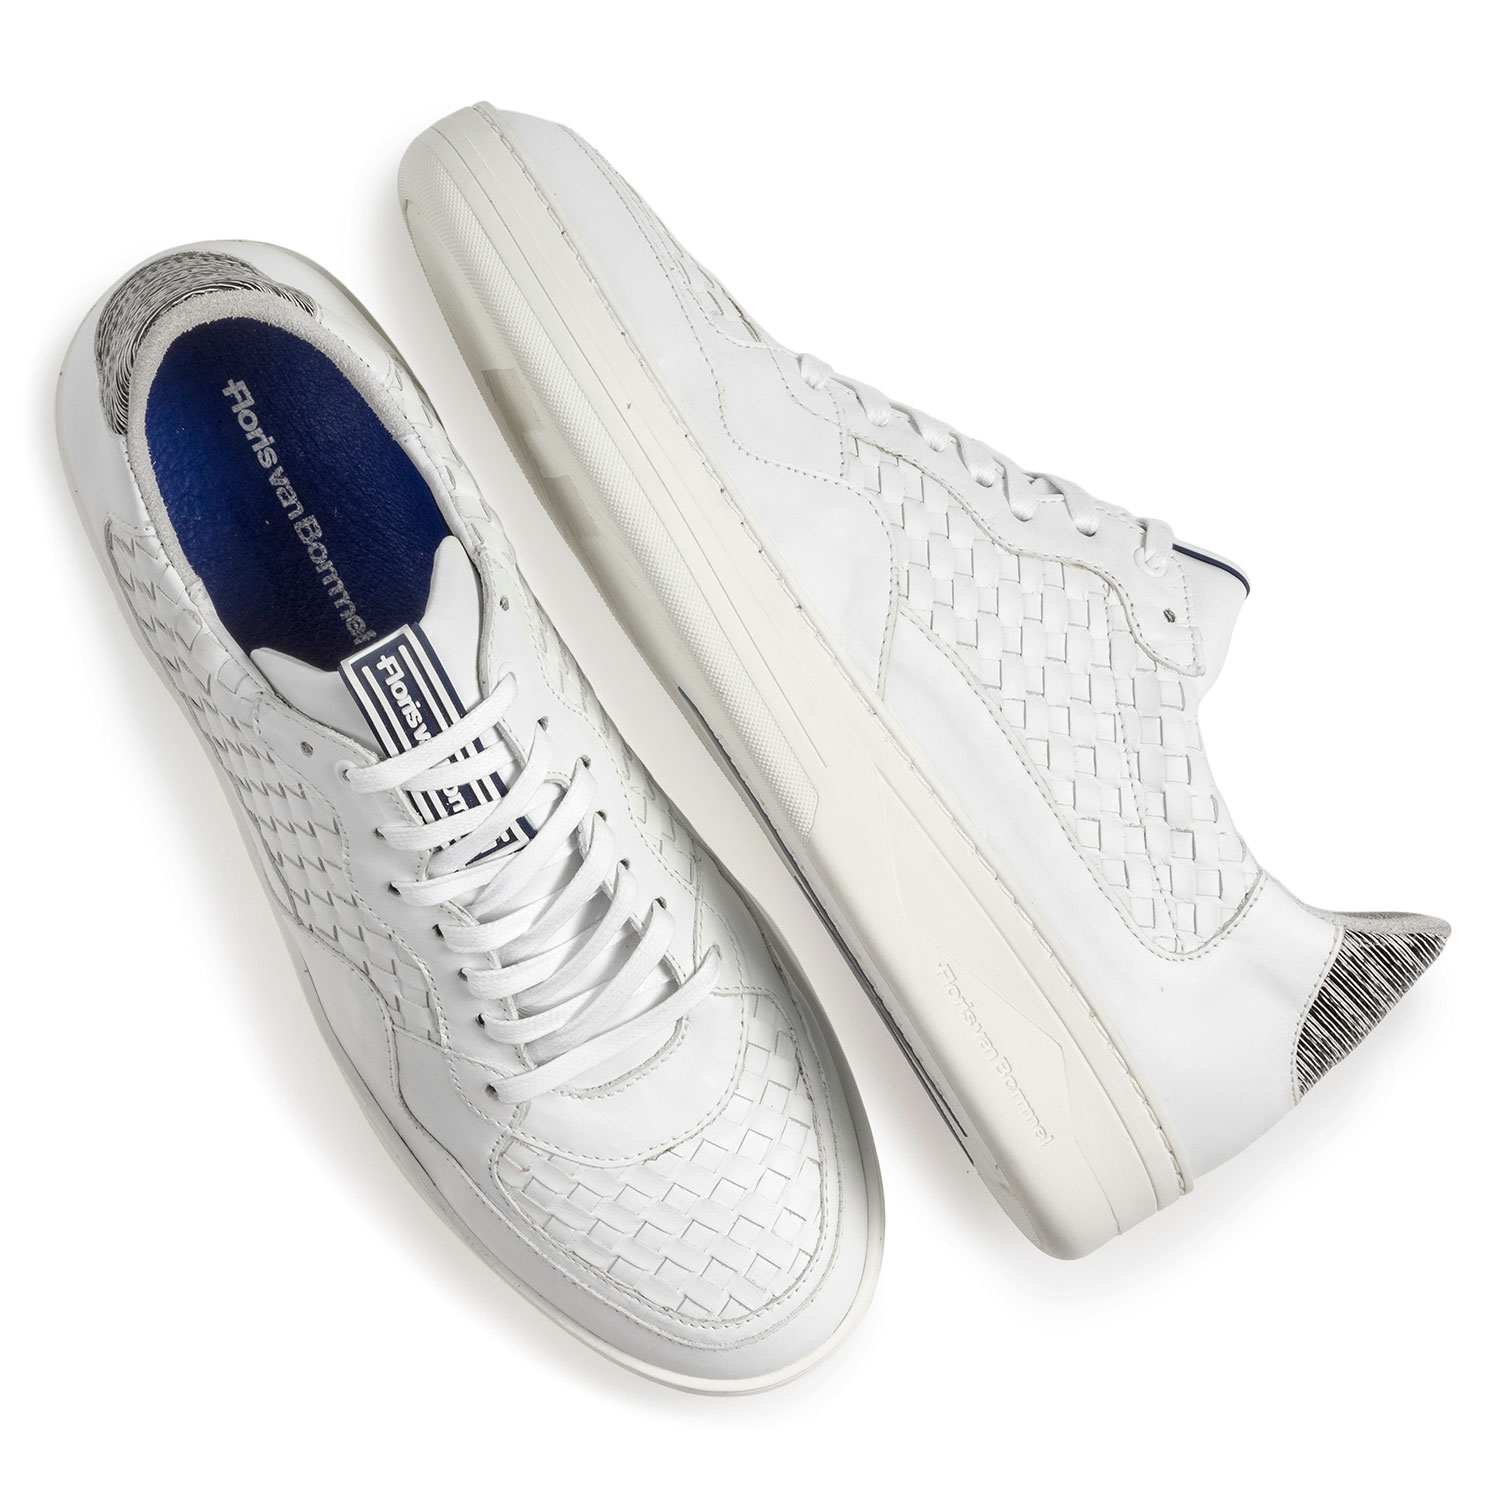 16265/02 - White braided calf leather sneaker